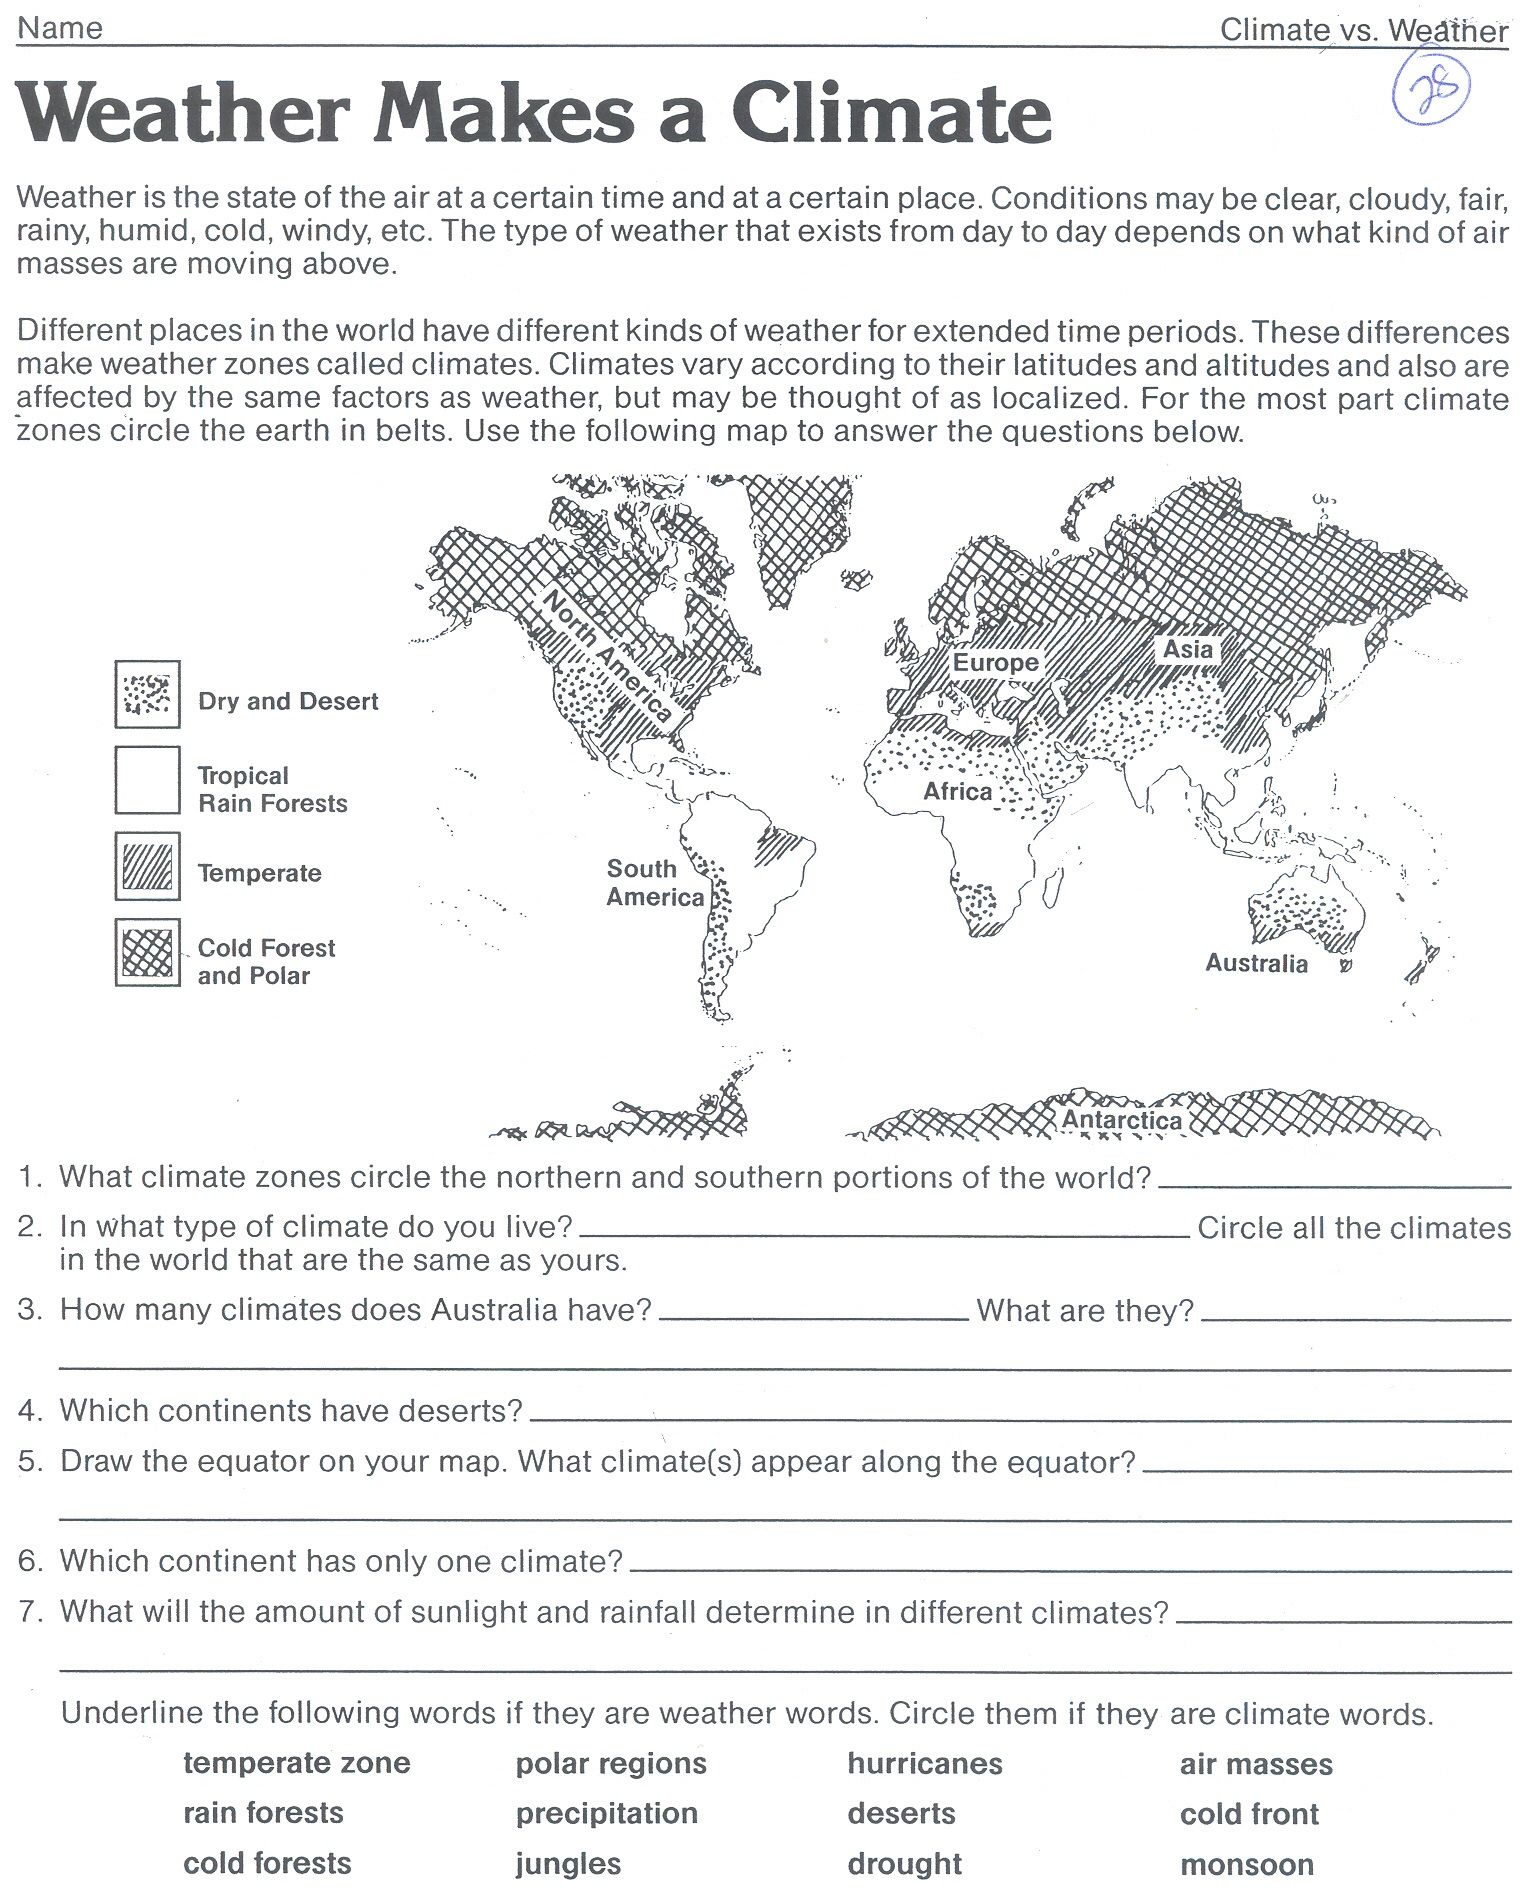 worksheet Reading A Weather Map Worksheet weather makes a climate worksheet science pinterest worksheets worksheet